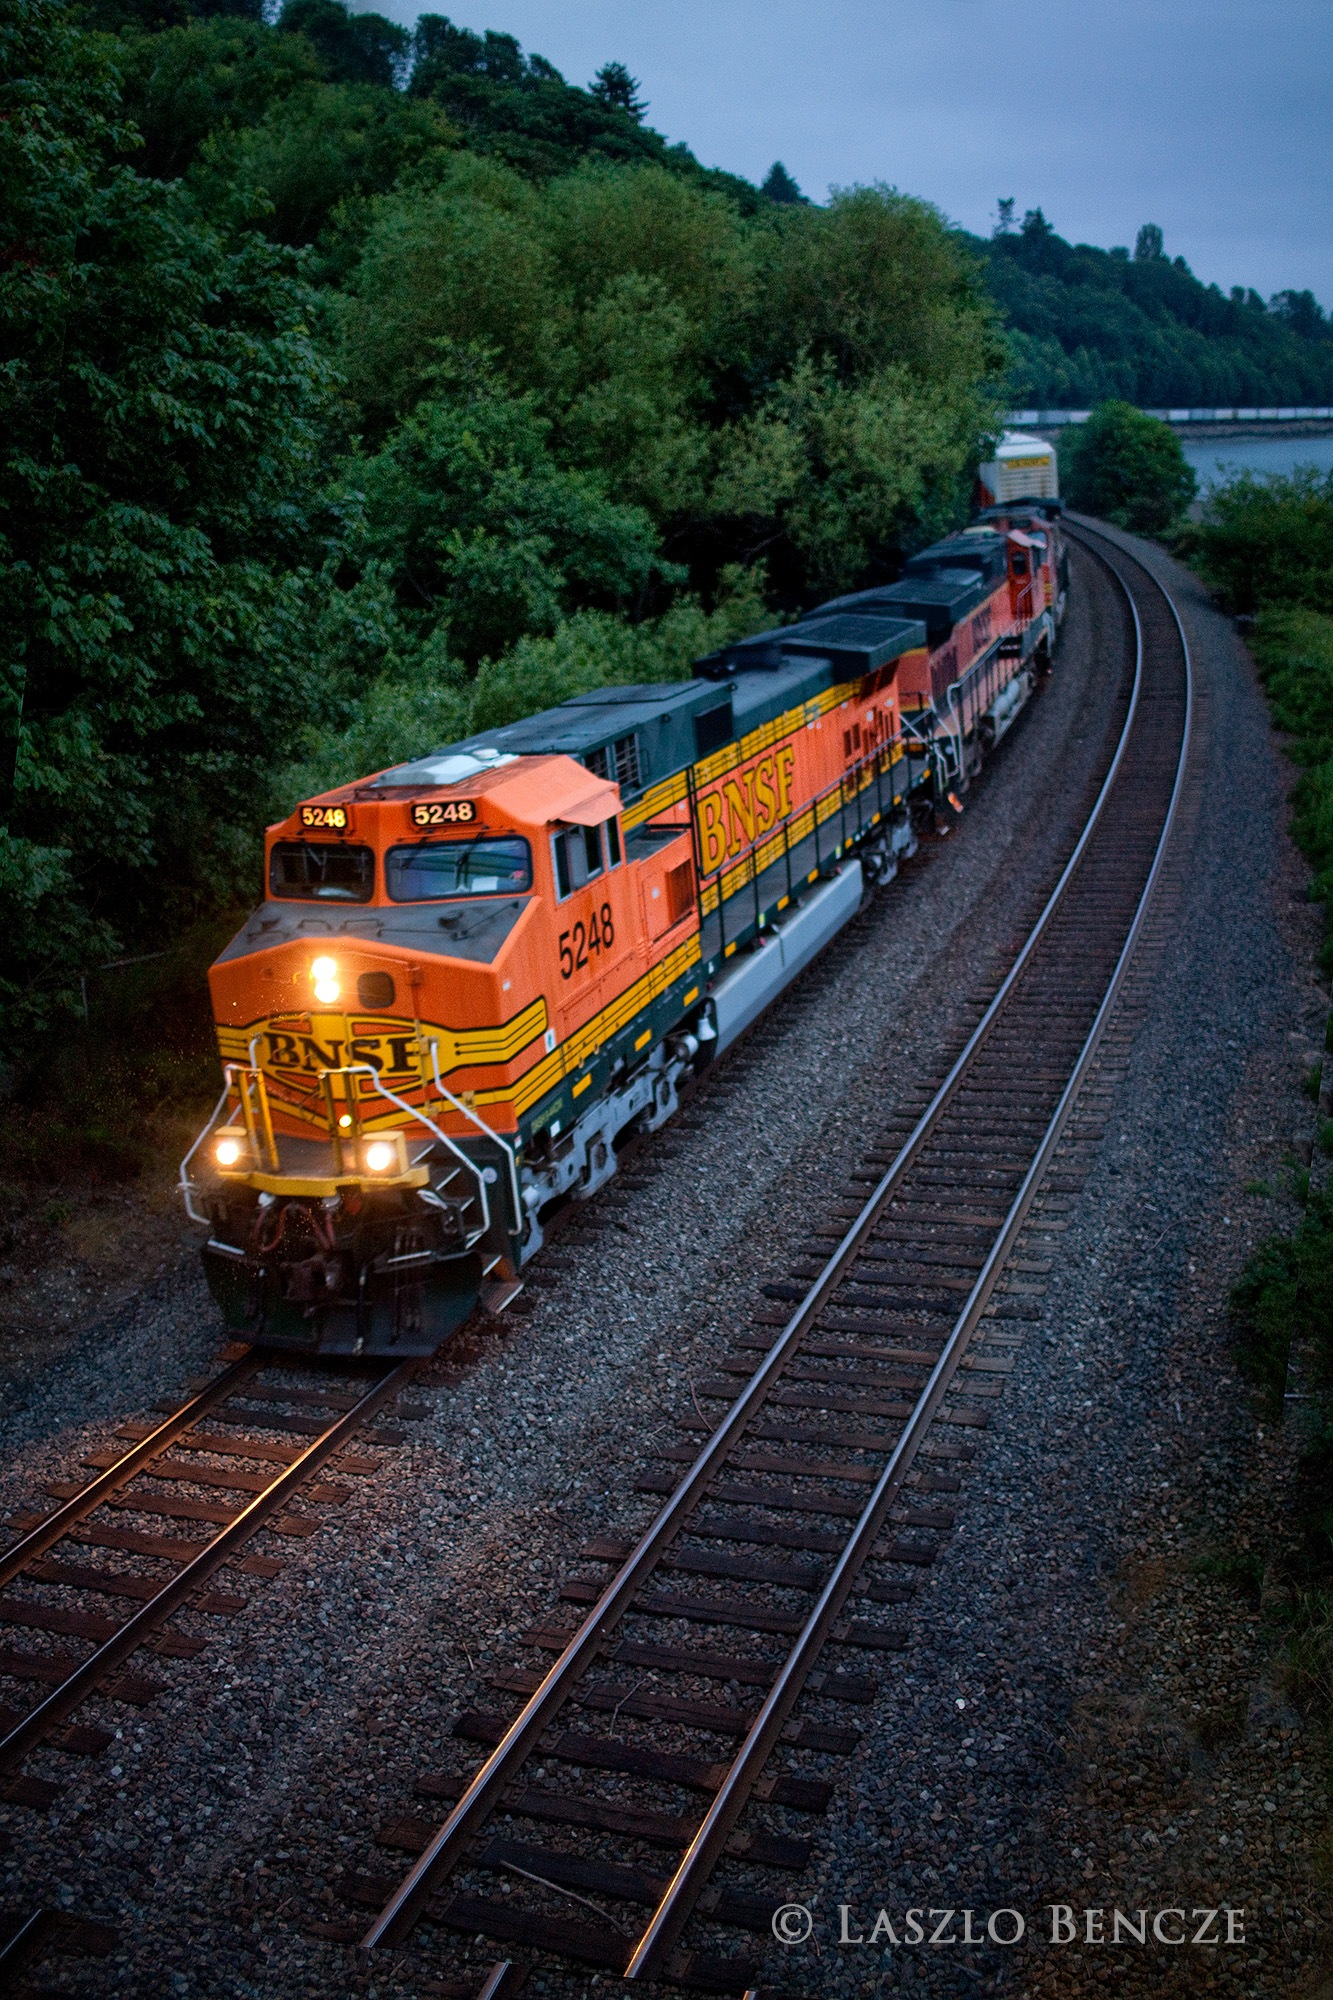 Train, Early Morning, North of Seattle by Laszlo Bencze